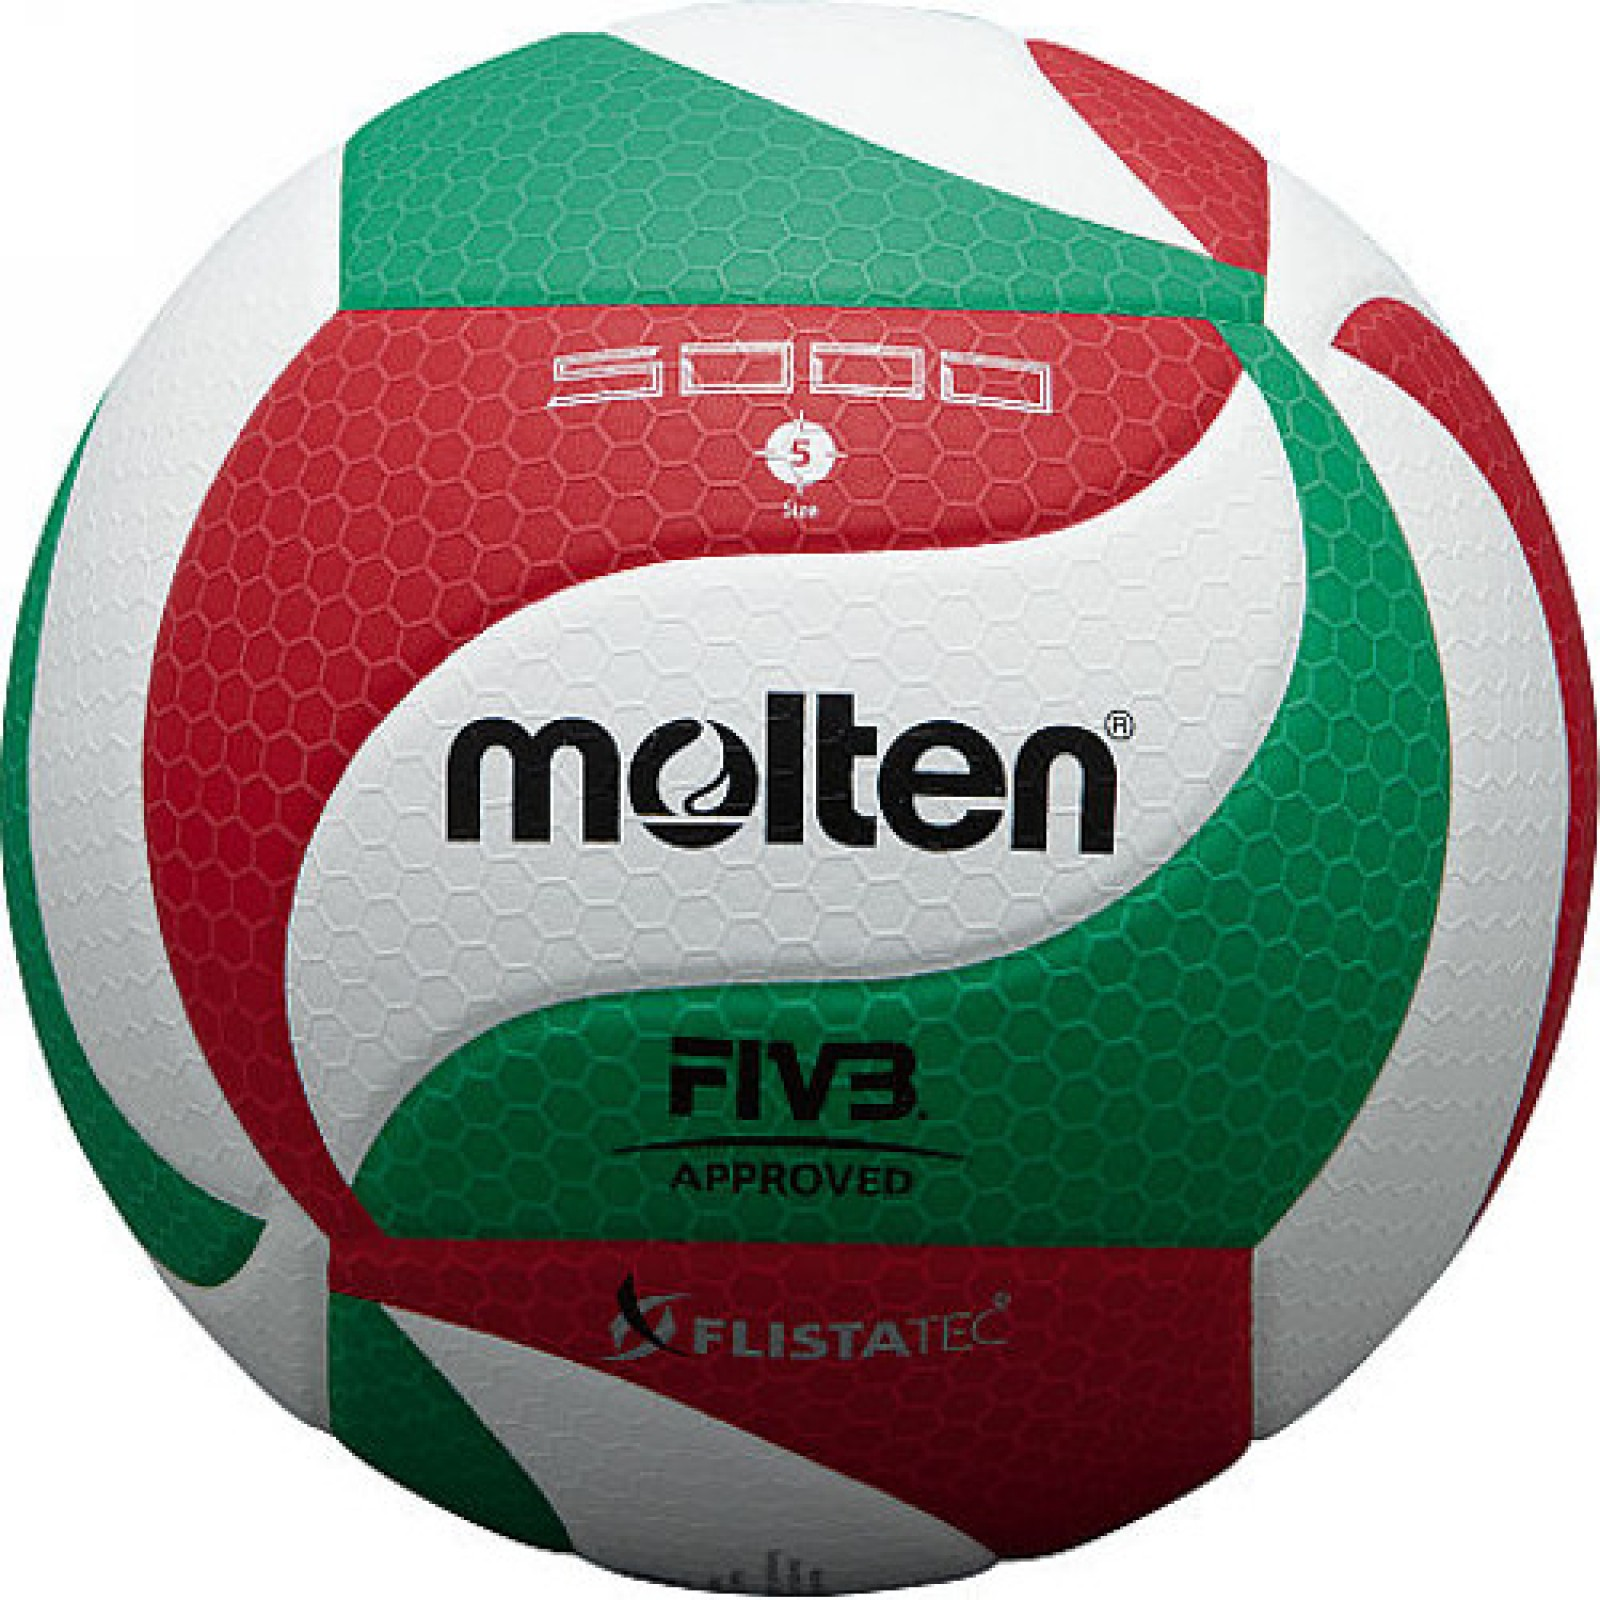 Molten V5M5000 Flistatec FIVB Approved Volleyball. View detailed images (3) 4aff5037a52c2